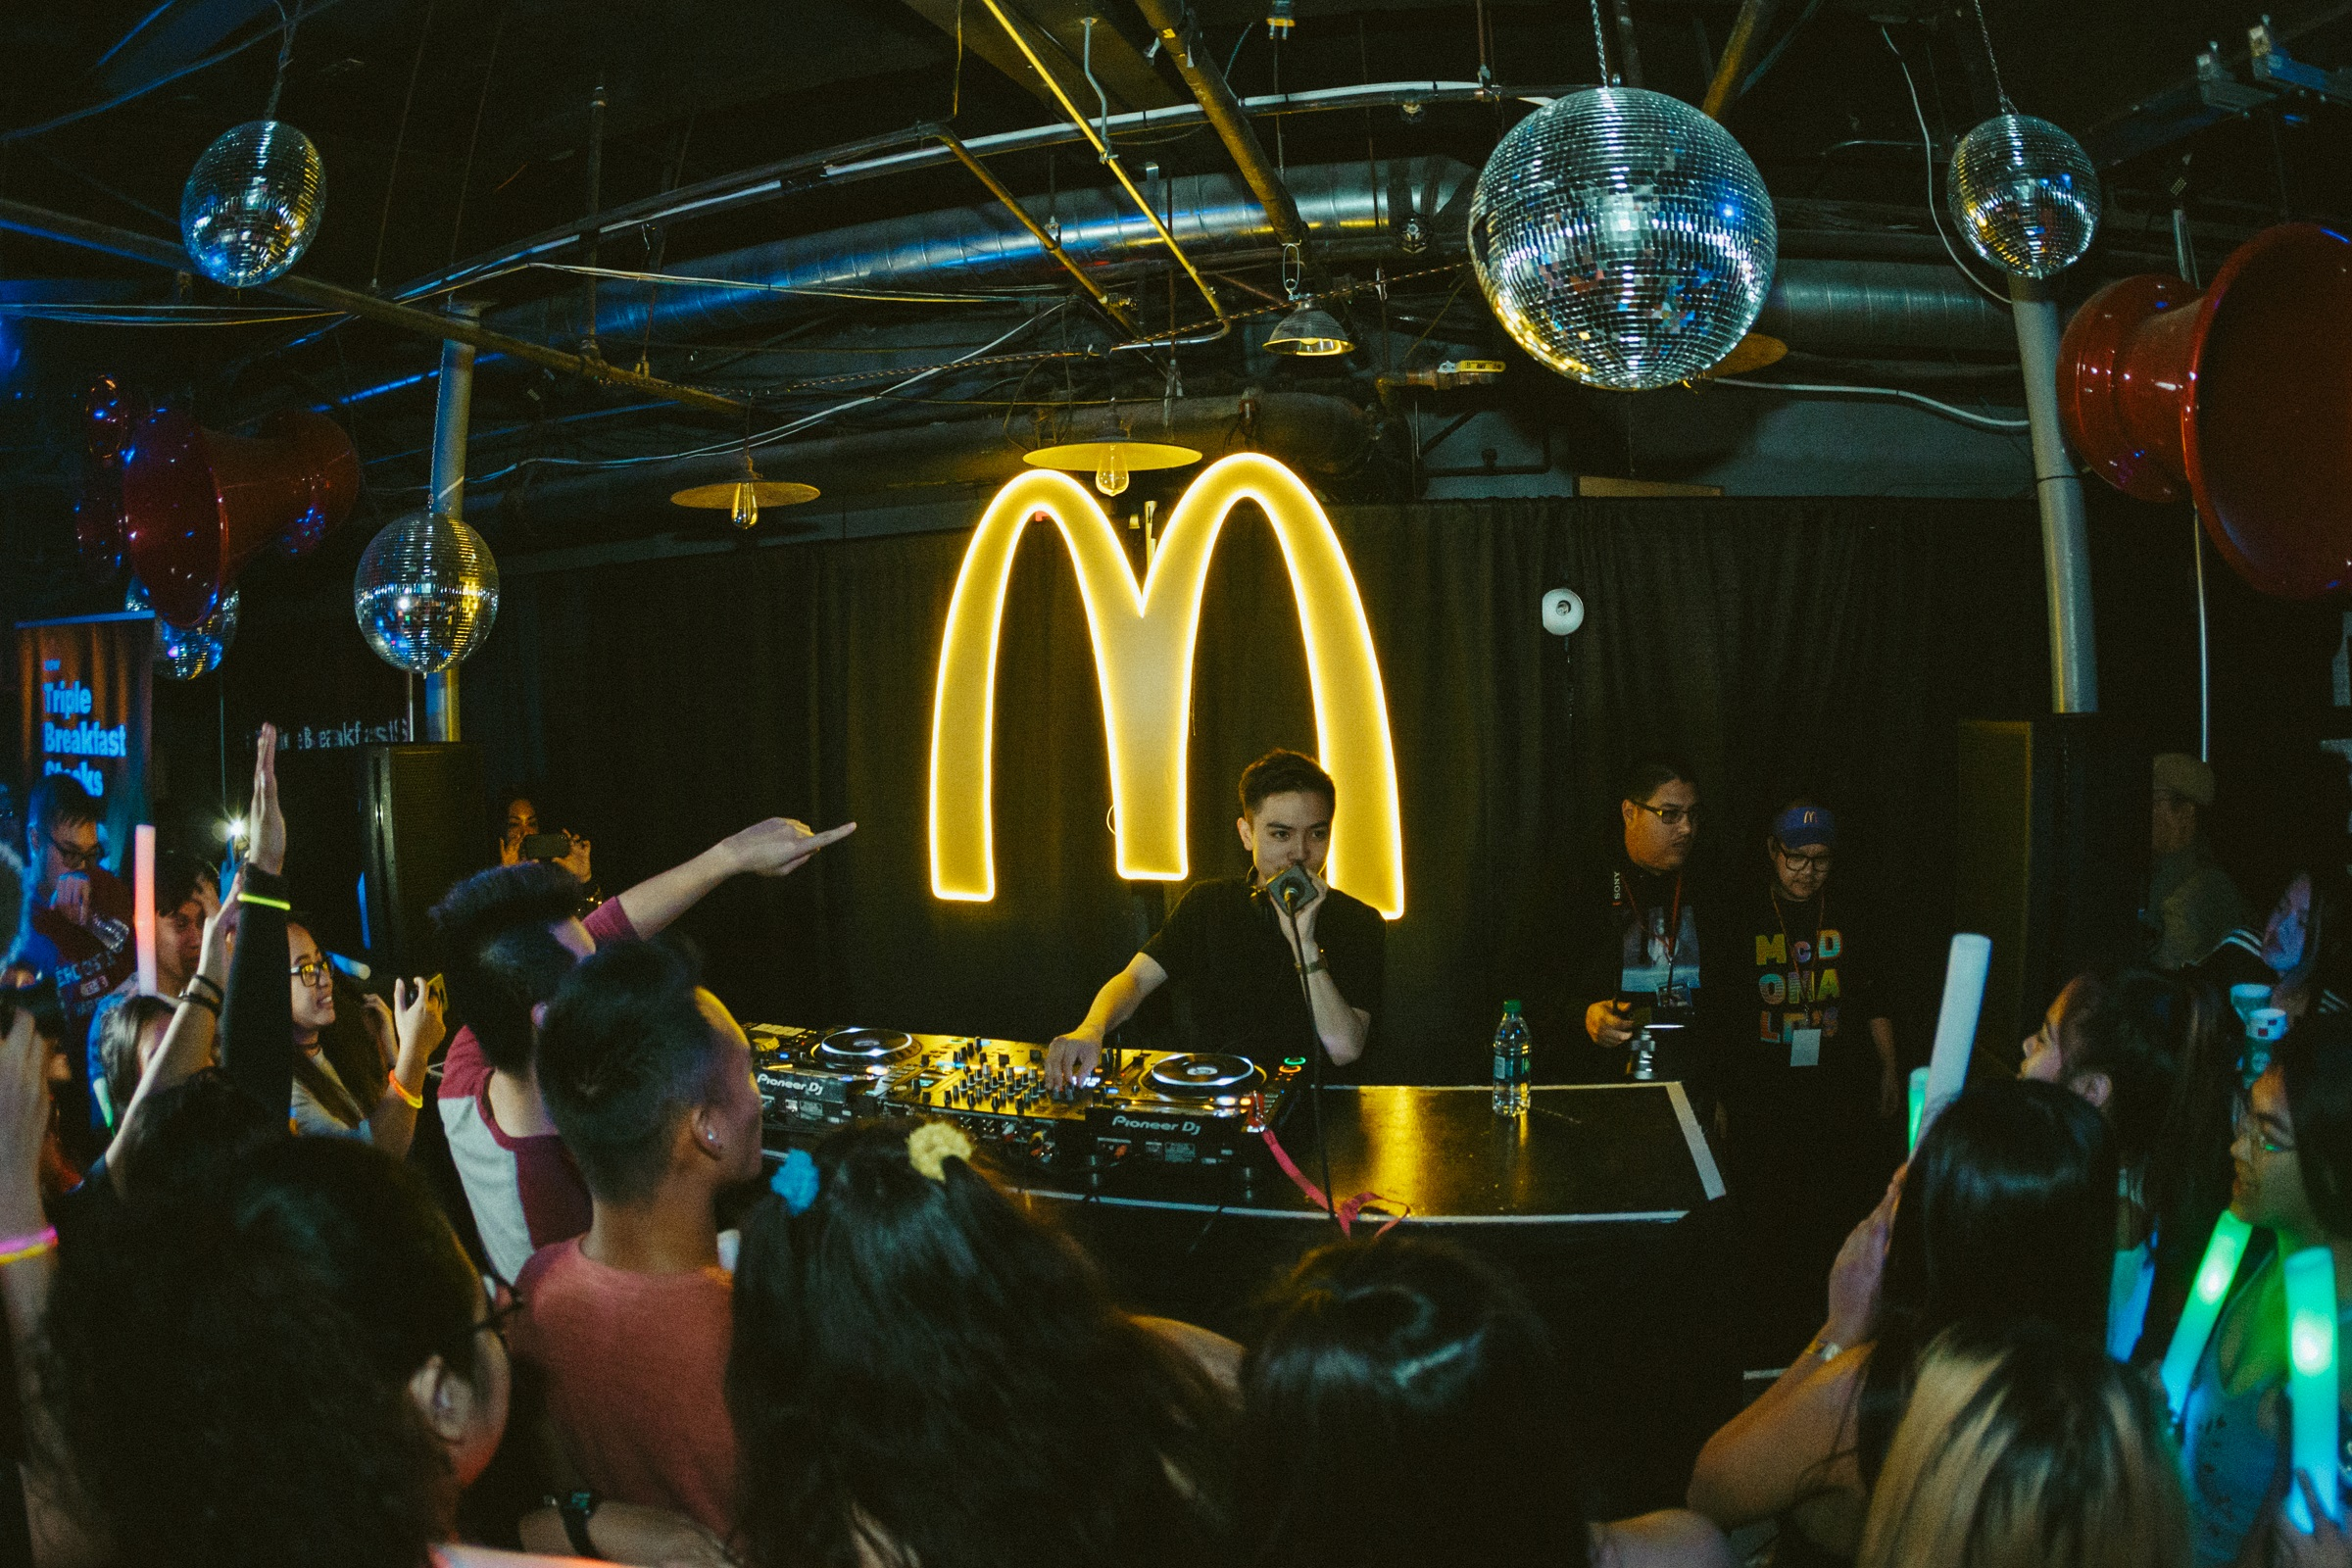 I Went To A 6am Rave Sponsored By McDonald's & This Is What It Looked Like